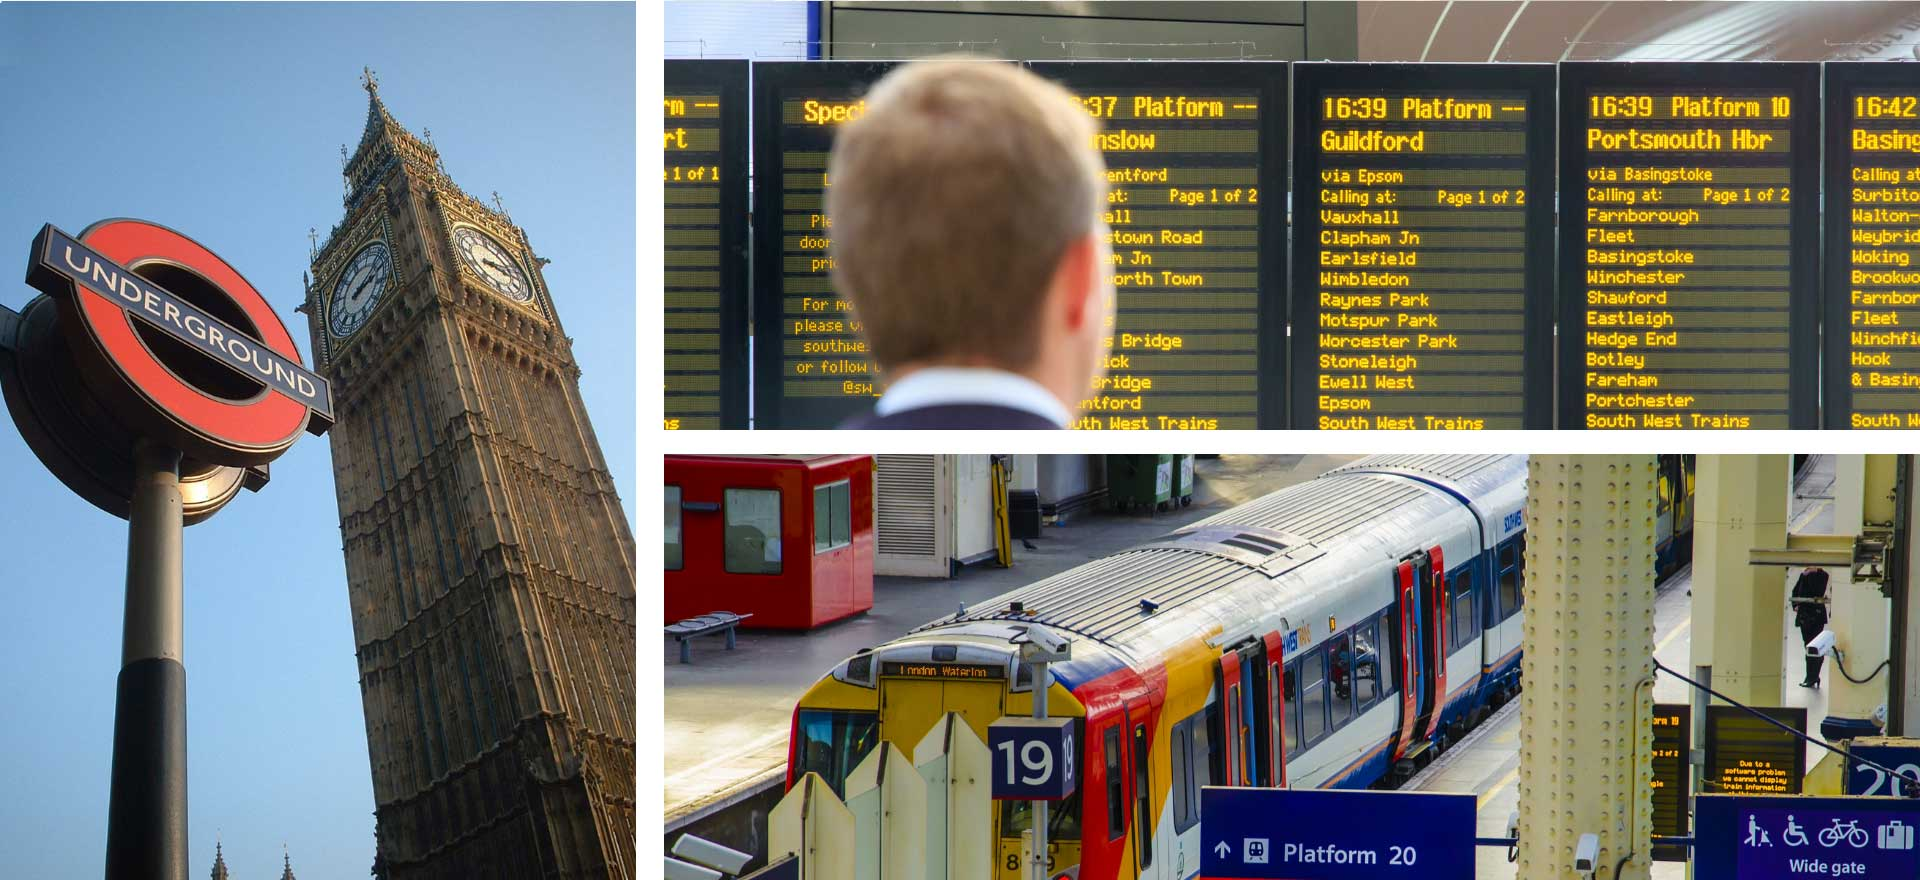 Three images of London Underground, Train Timetable board and Train in station